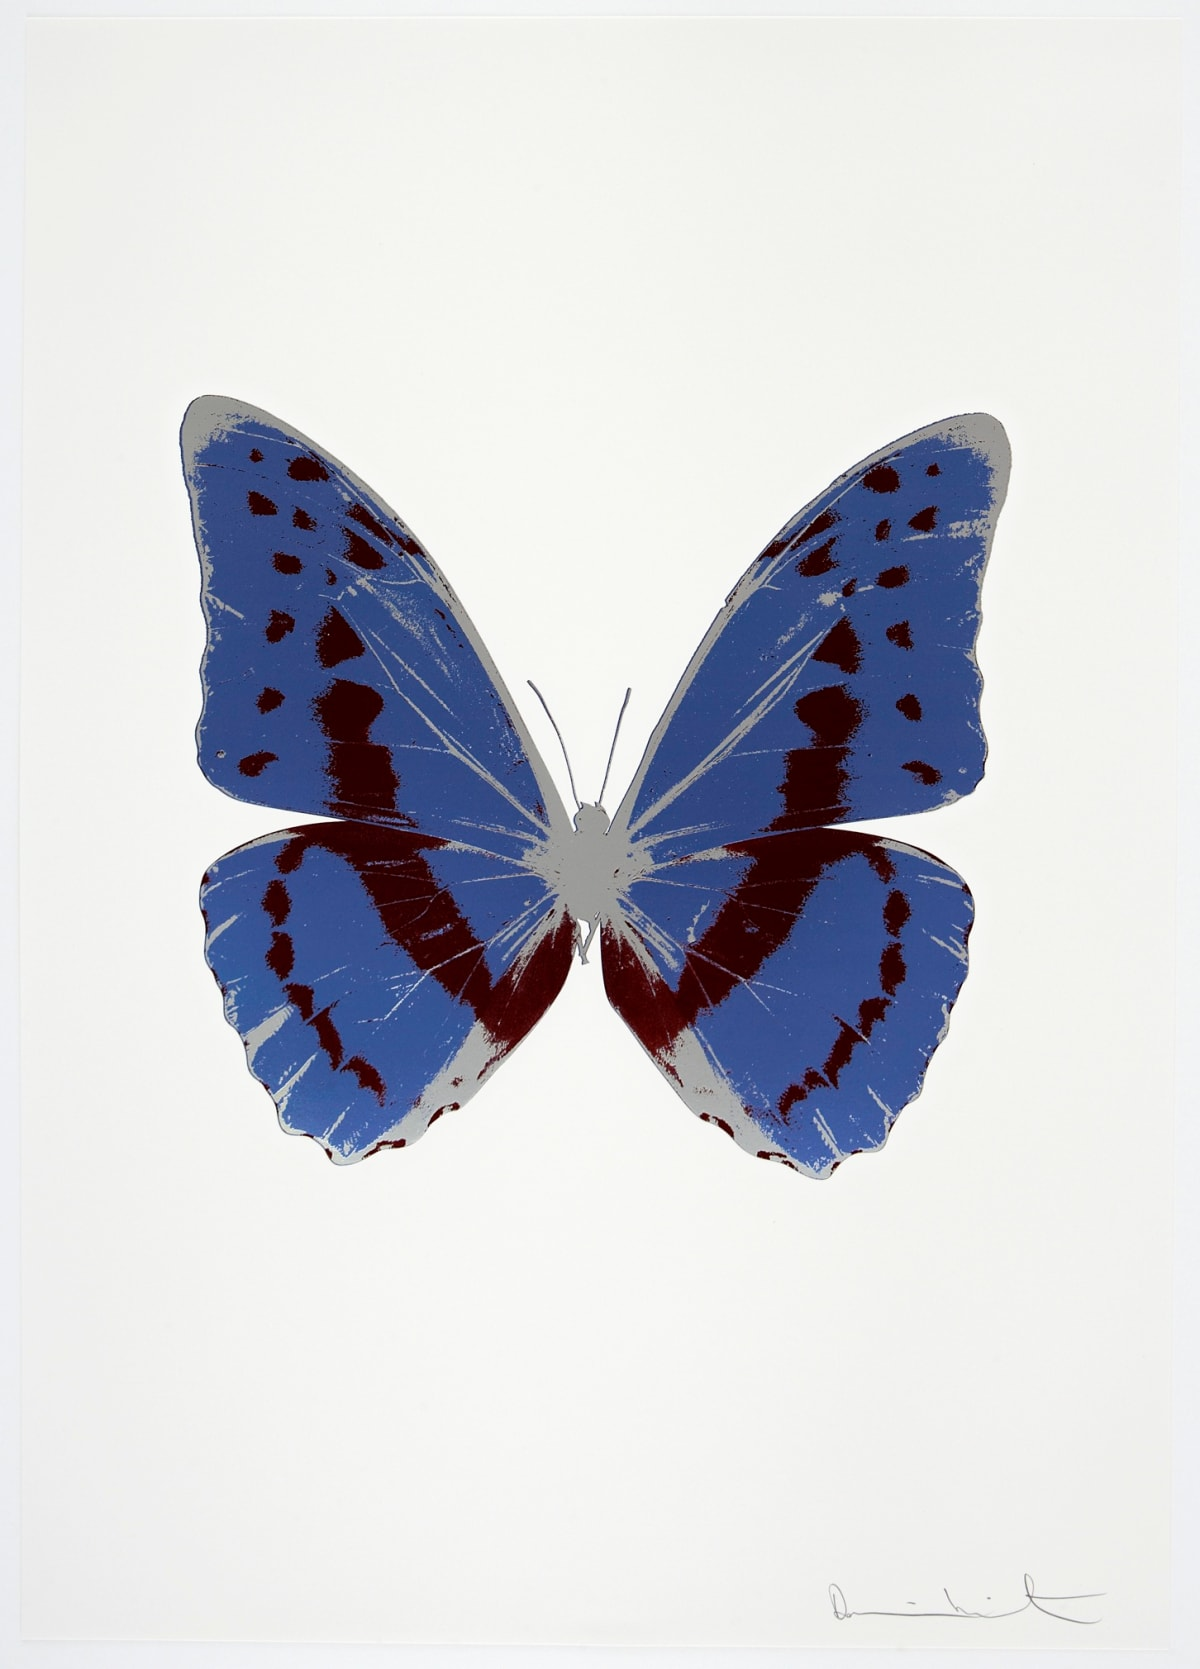 Damien Hirst The Souls III - Frost Blue/Burgundy/Silver Gloss, 2010 3 colour foil block on 300gsm Arches 88 archival paper. Signed and numbered. Published by Paul Stolper and Other Criteria 72 x 51cm OC7941 / 660-44 Edition of 15